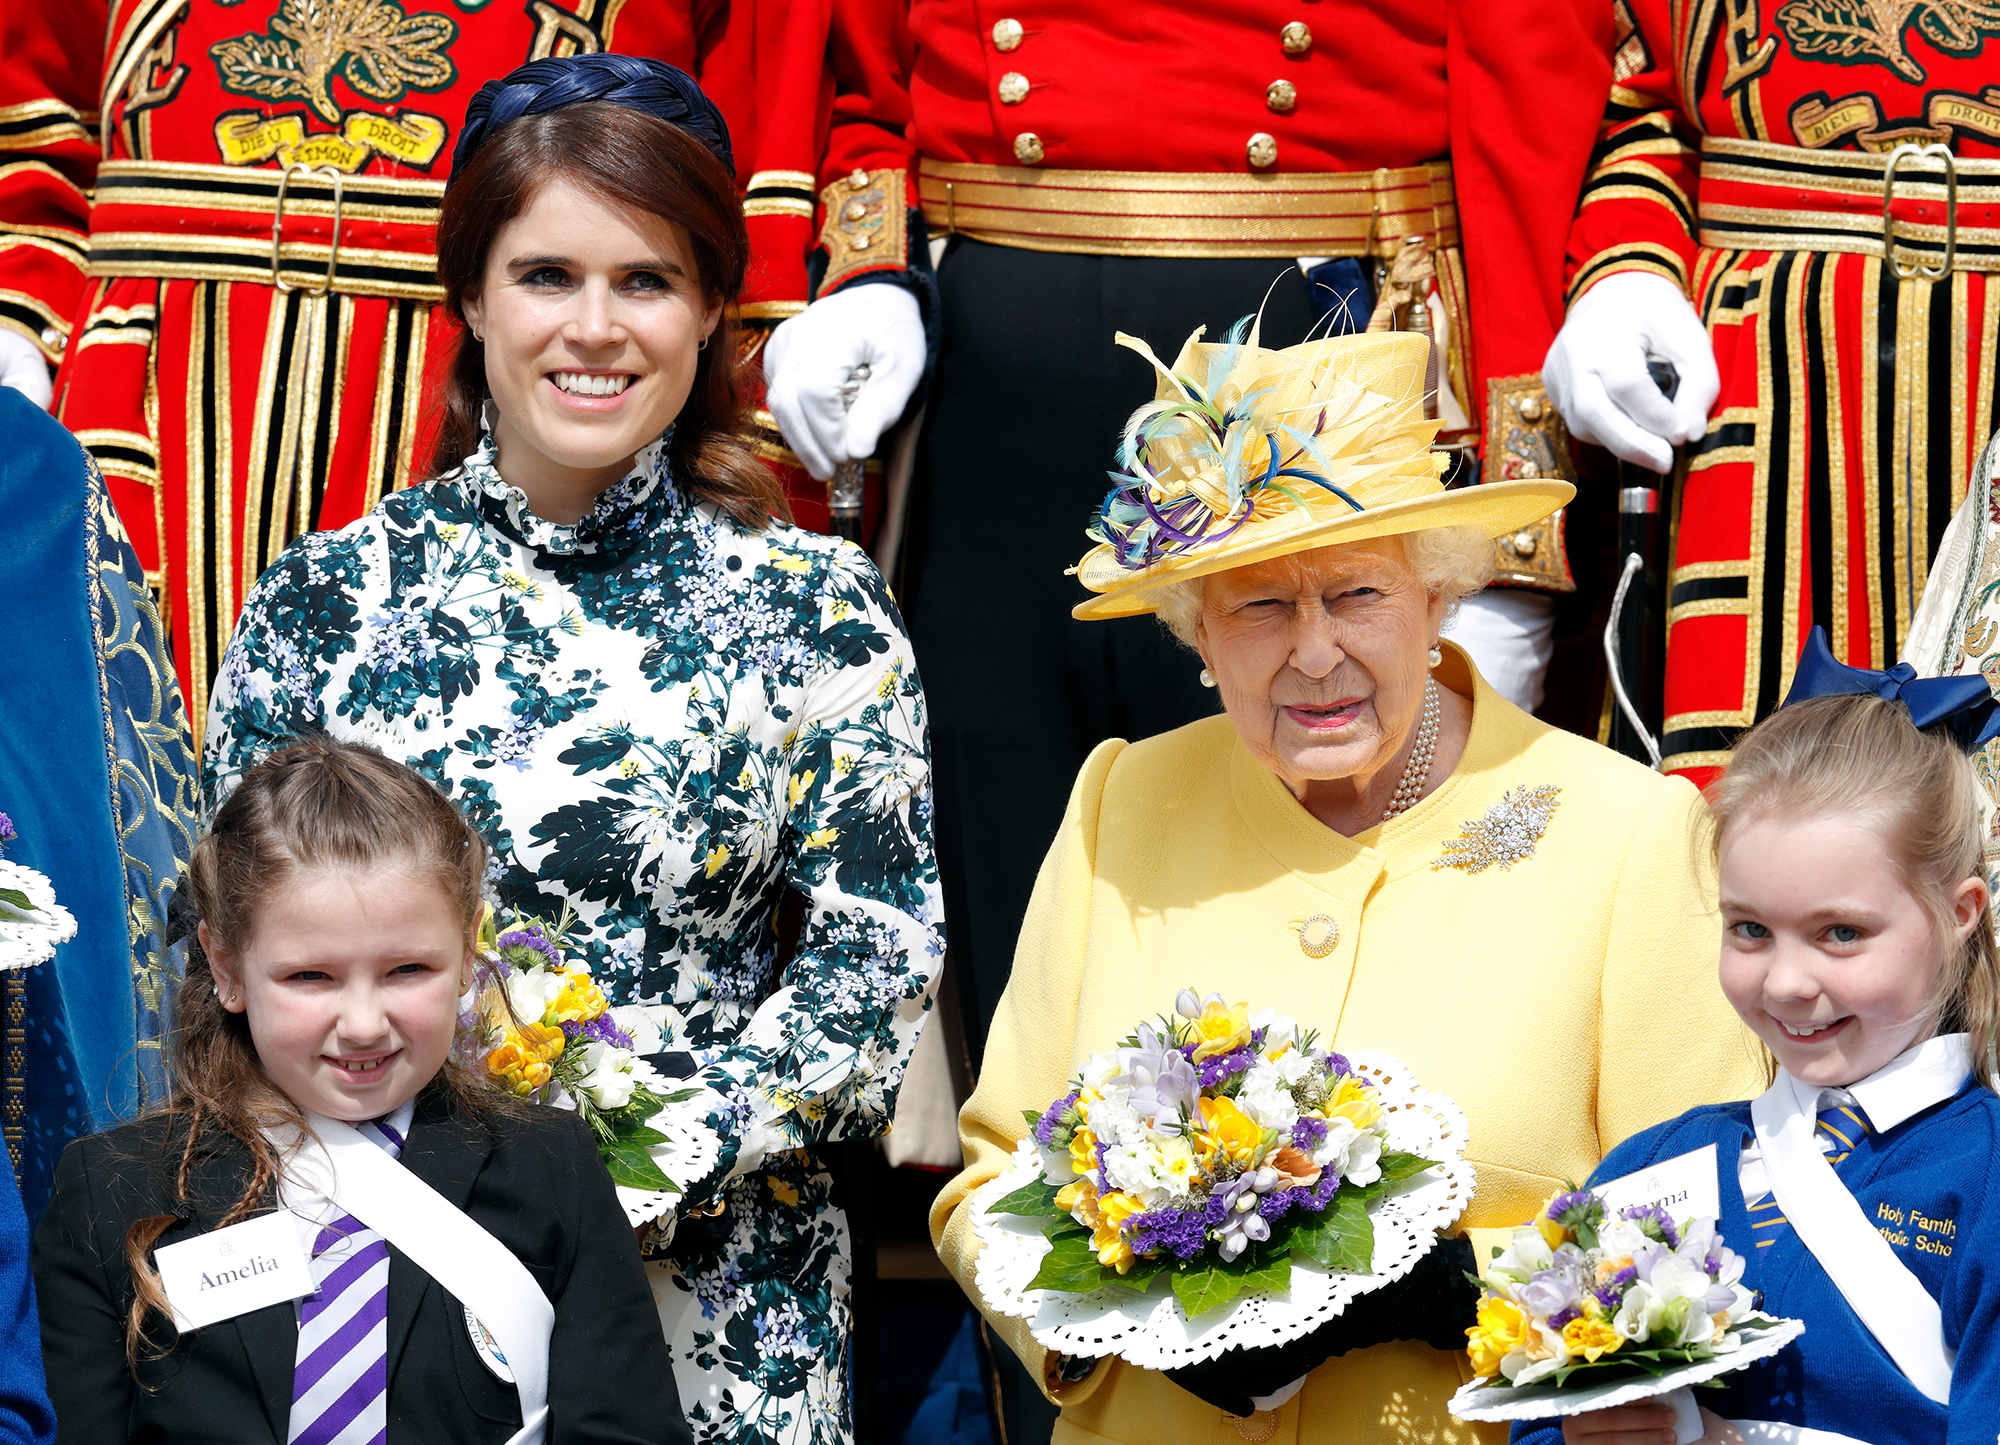 "Princess Eugenie Returns to Scene of Her Wedding - Duchess Sarah Ferguson , otherwise known as Fergie, praised her daughter's philanthropic efforts in a heartfelt Instagram post. ""So proud of Her Majesty and Eugenie at the Maundy Thursday Service at St. George's Chapel today,"" Fergie captioned the sweet photo."